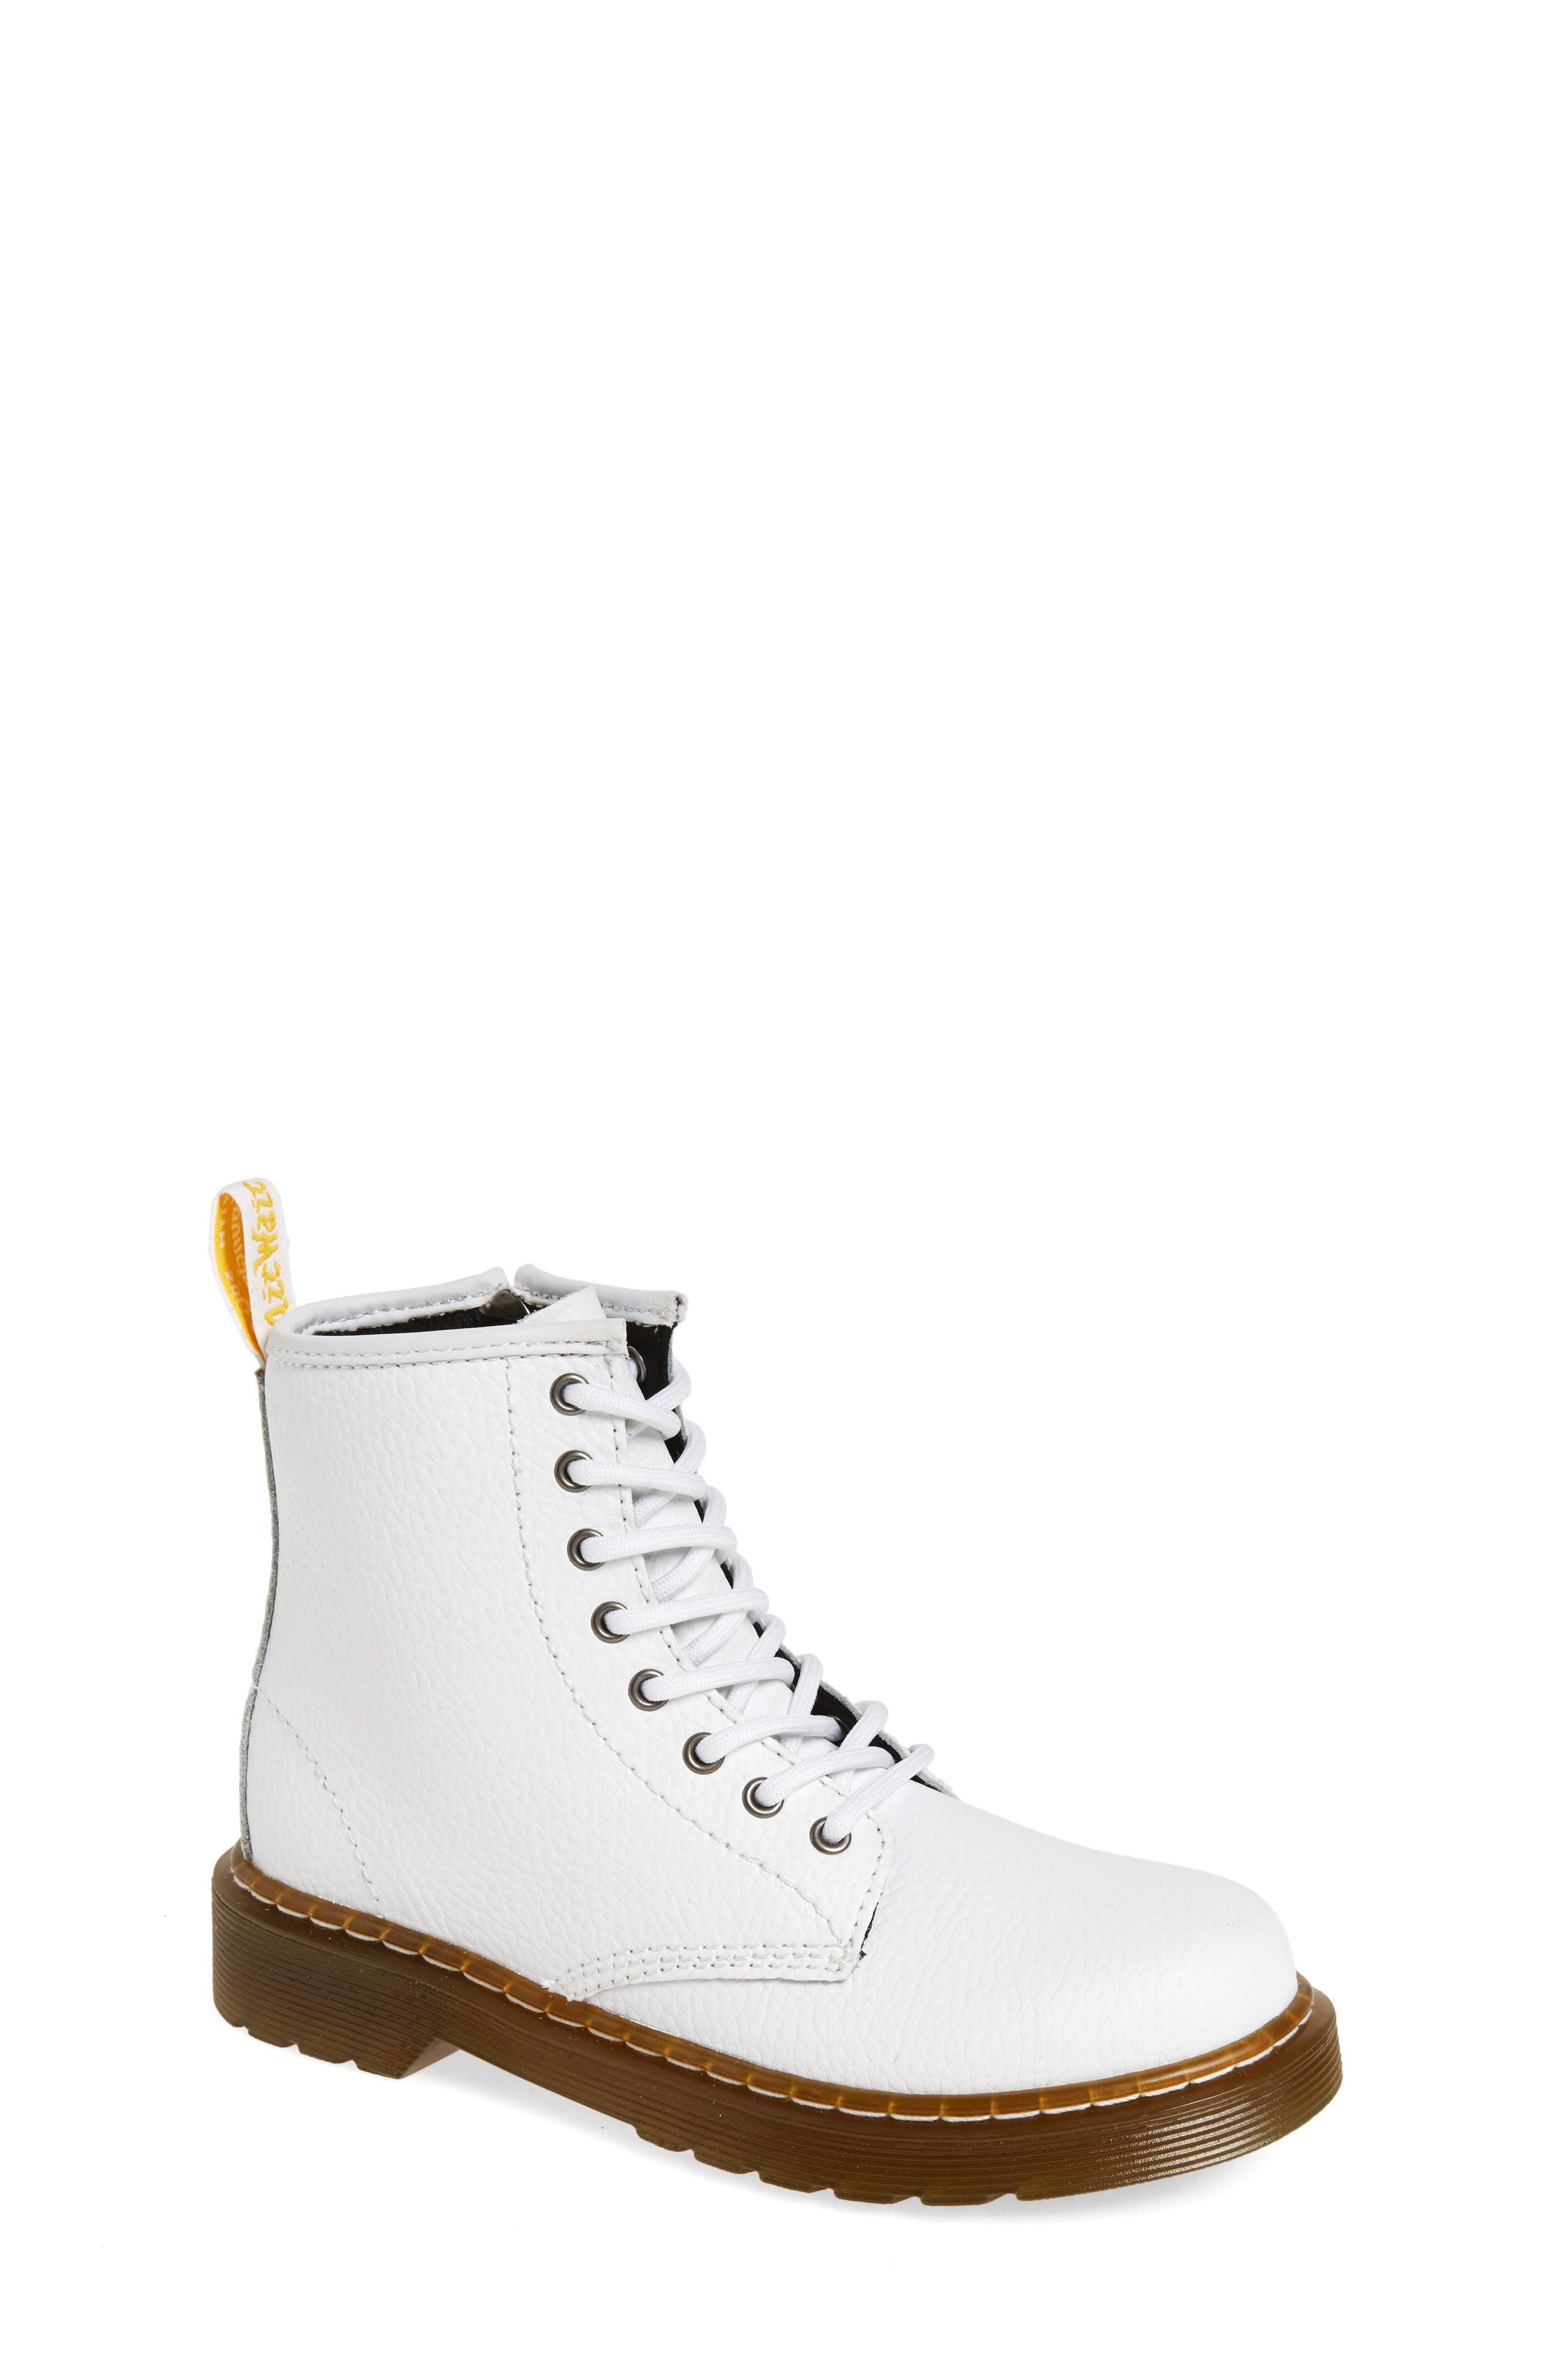 Delaney Pebbled Boot,                         Main,                         color, White Pebble Leather